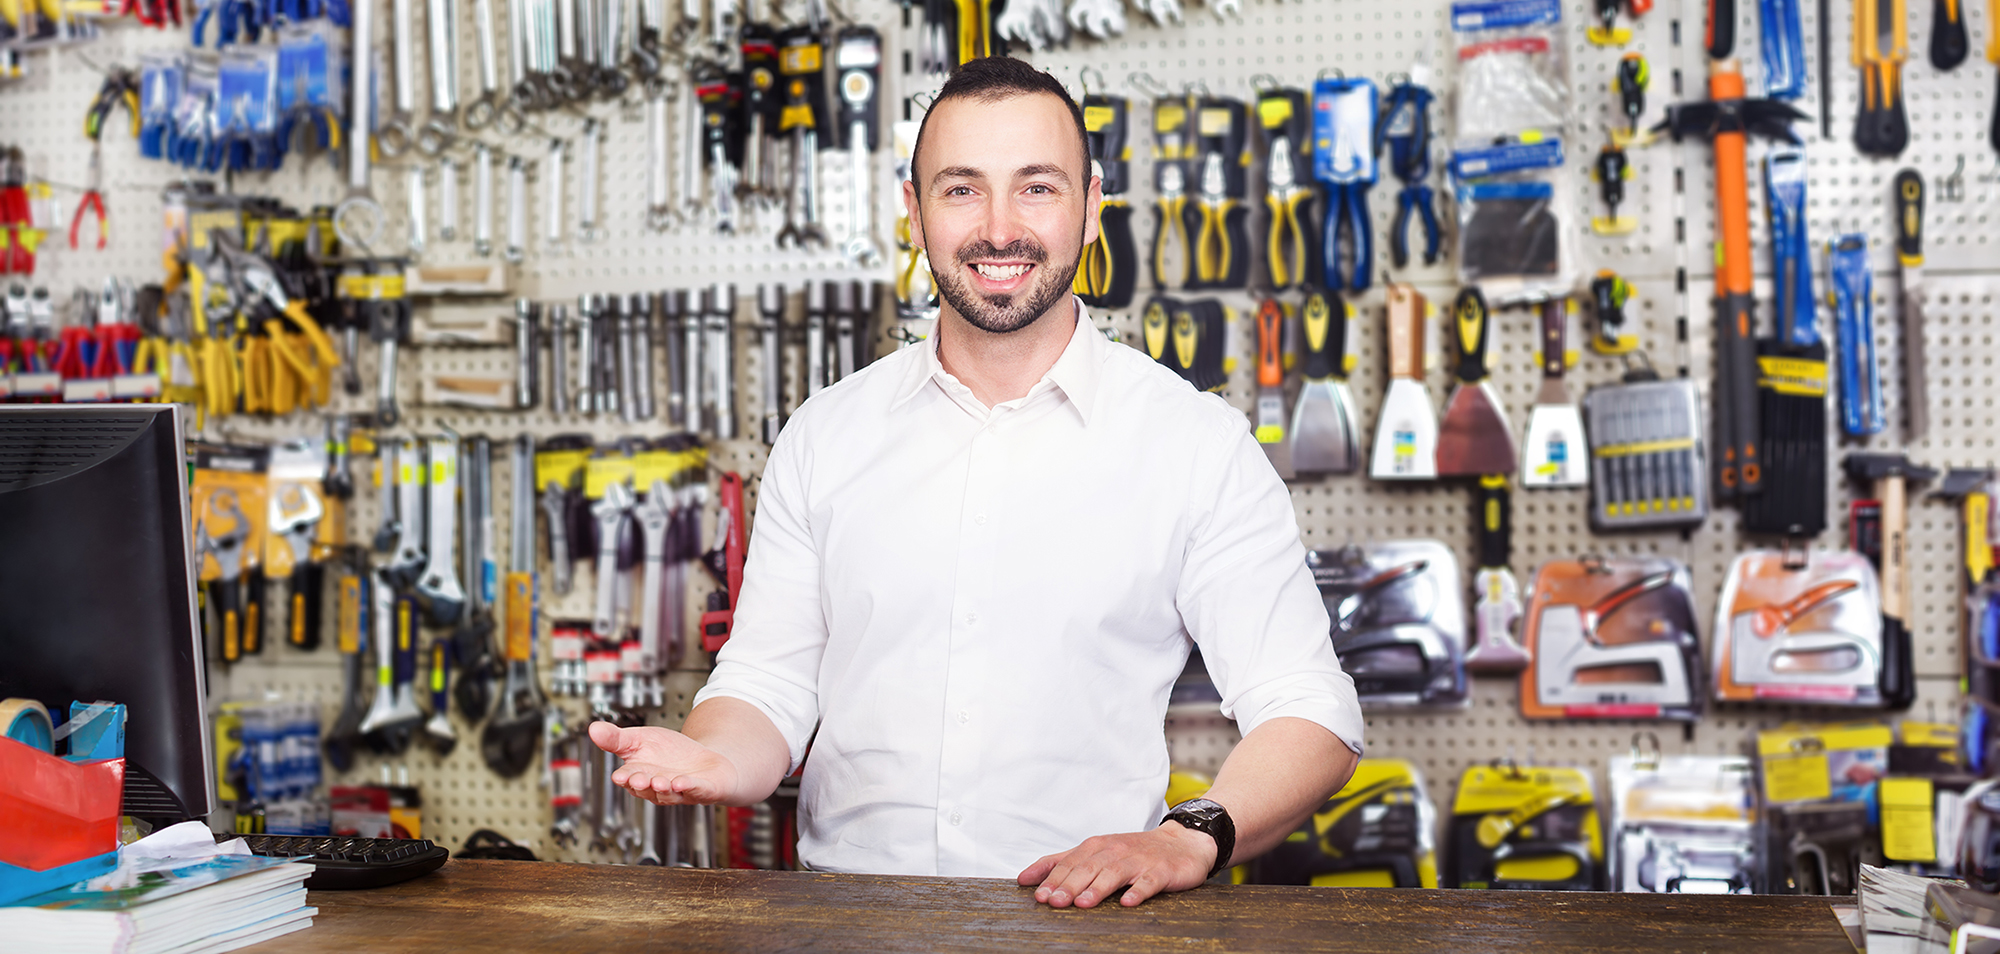 Business owner standing at point of sale in hardware store